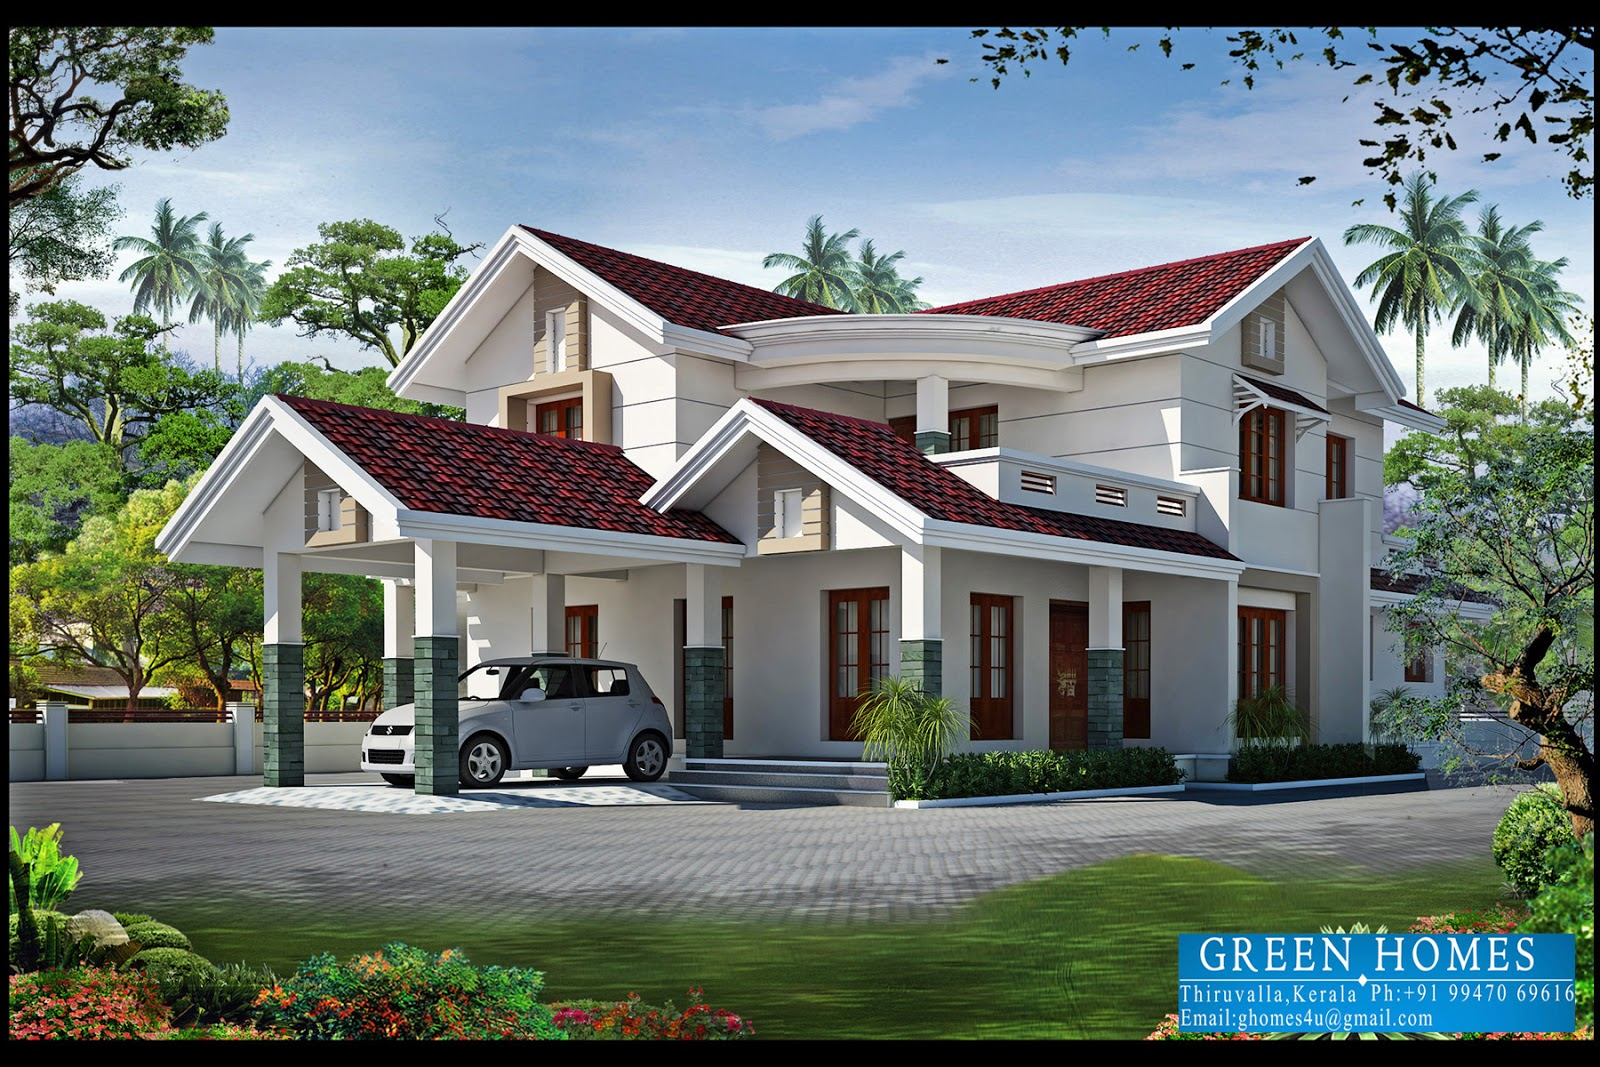 Green homes 4bhk kerala home design 2550 for New home design in kerala